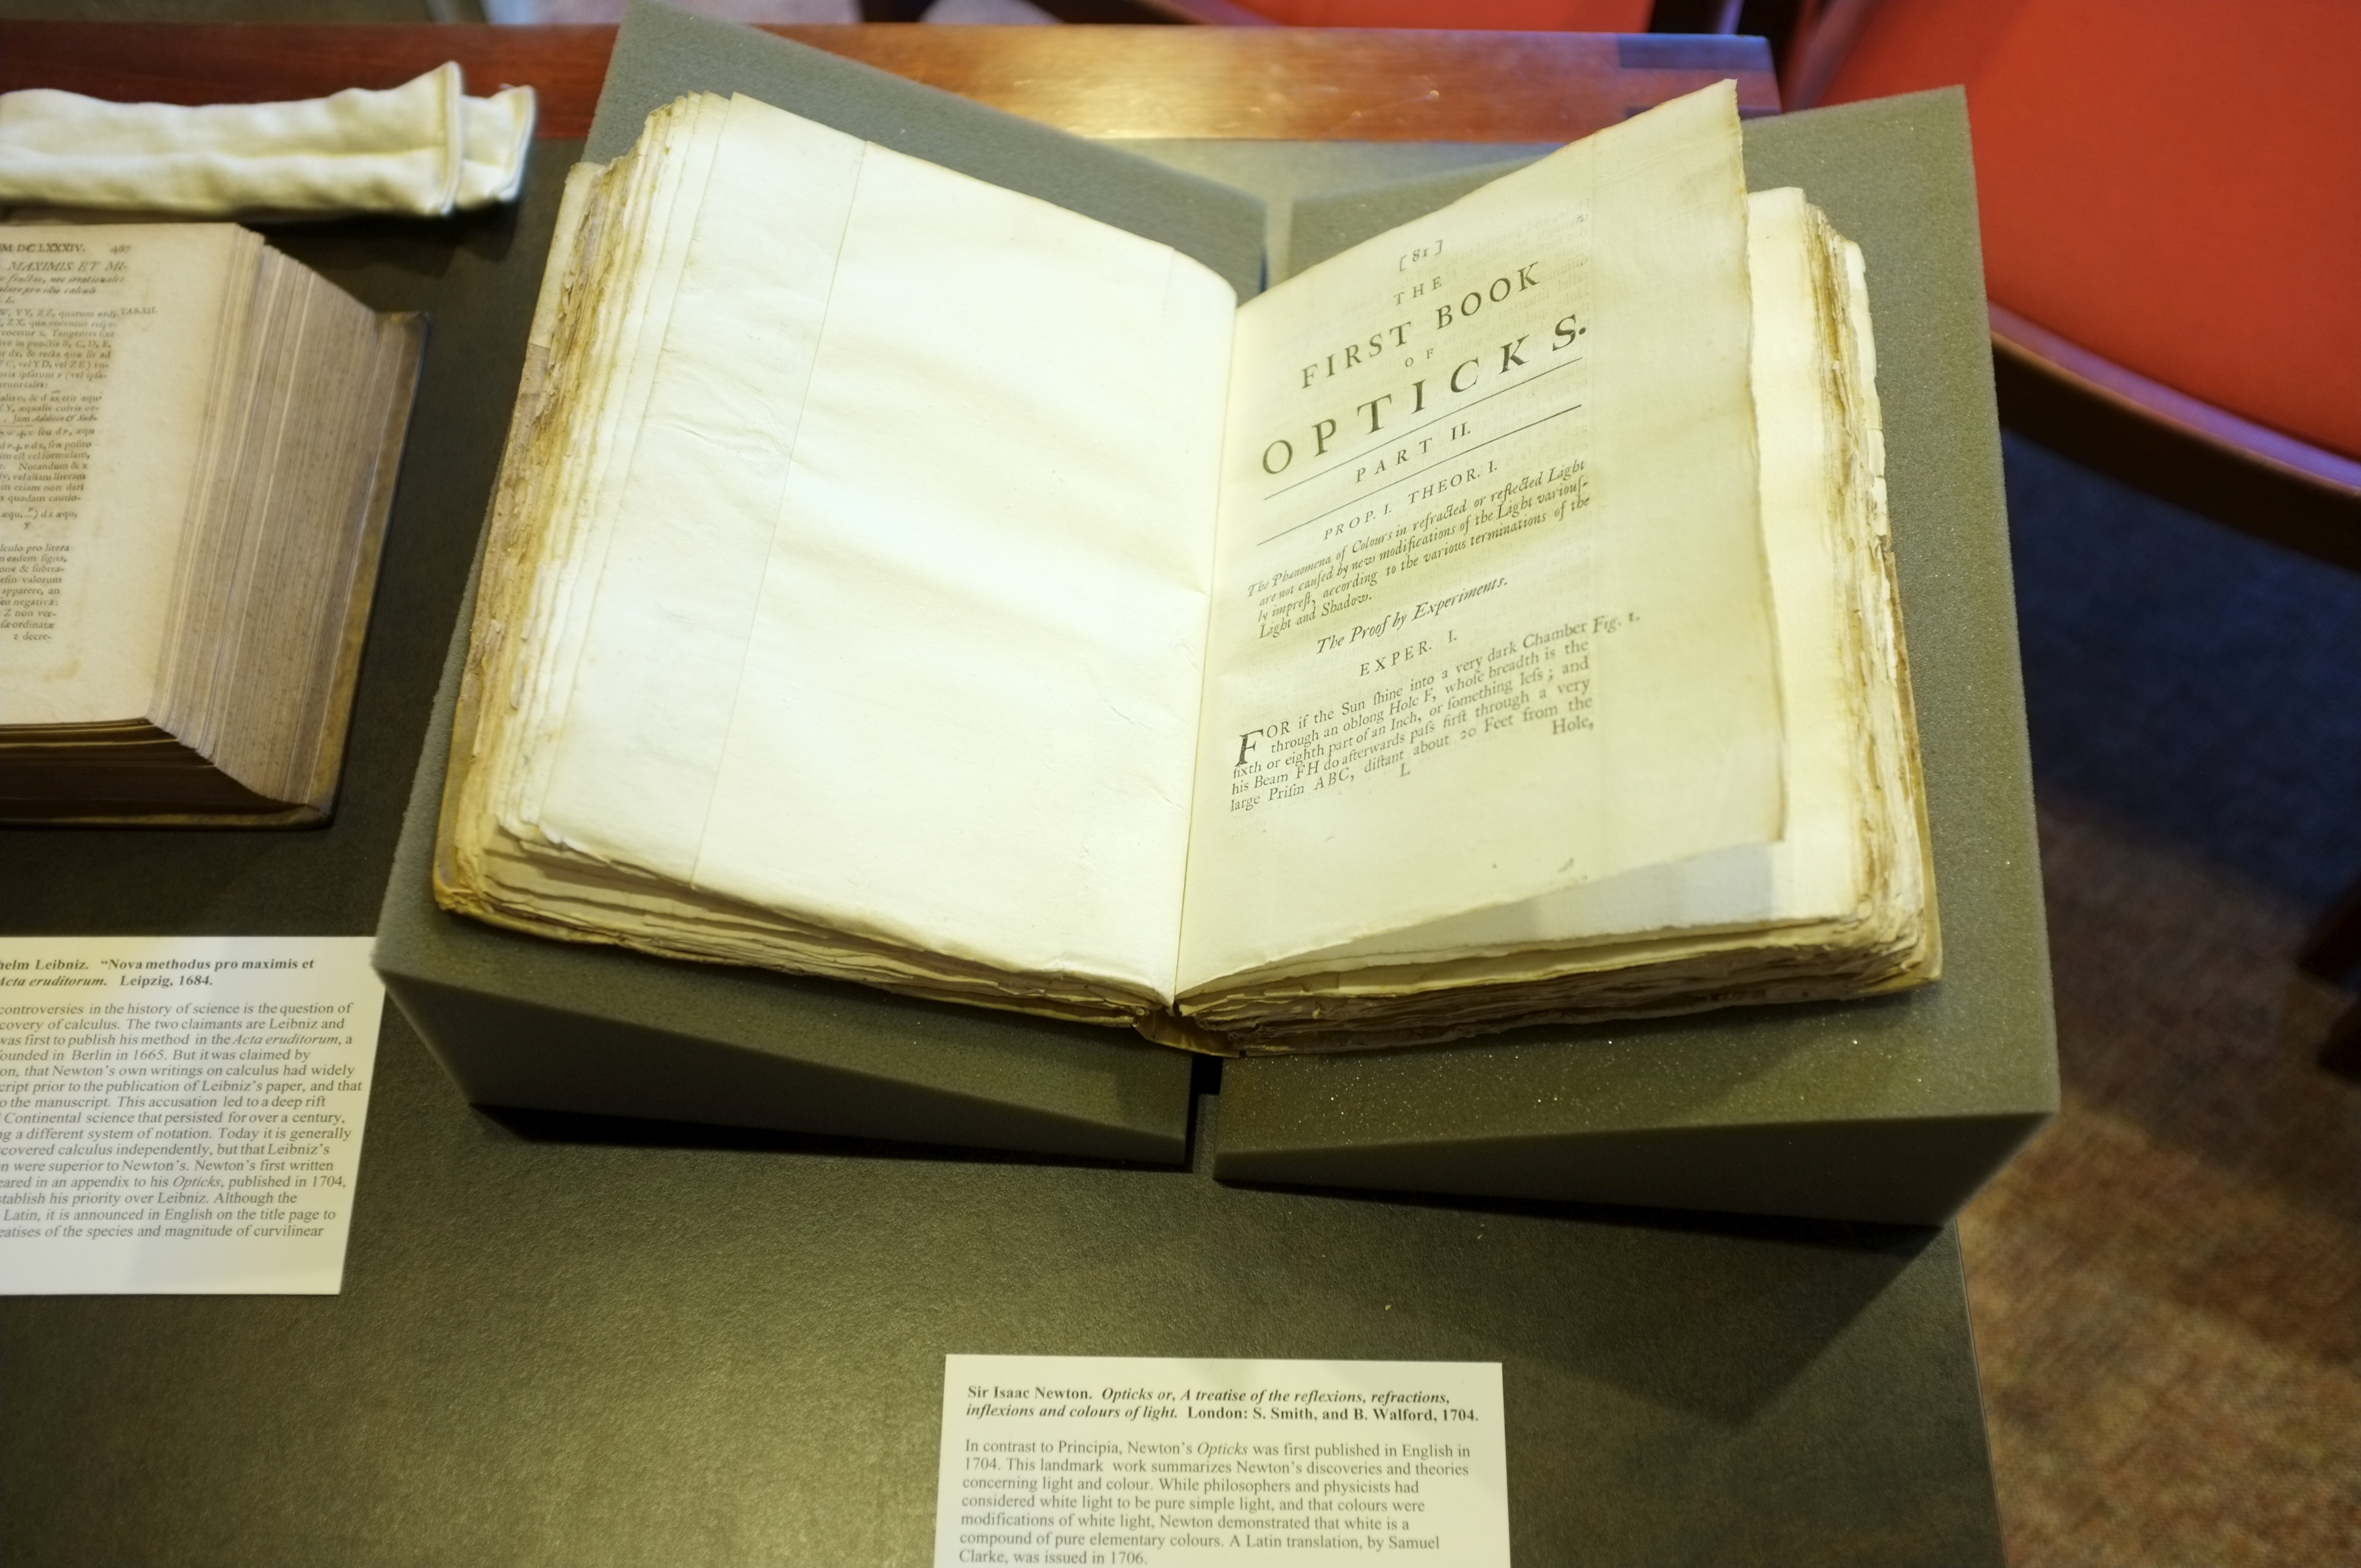 Colour book edges - A Copy Of Isaac Netwon S Opticks From 1704 Laying Open The Book Is Very Aged